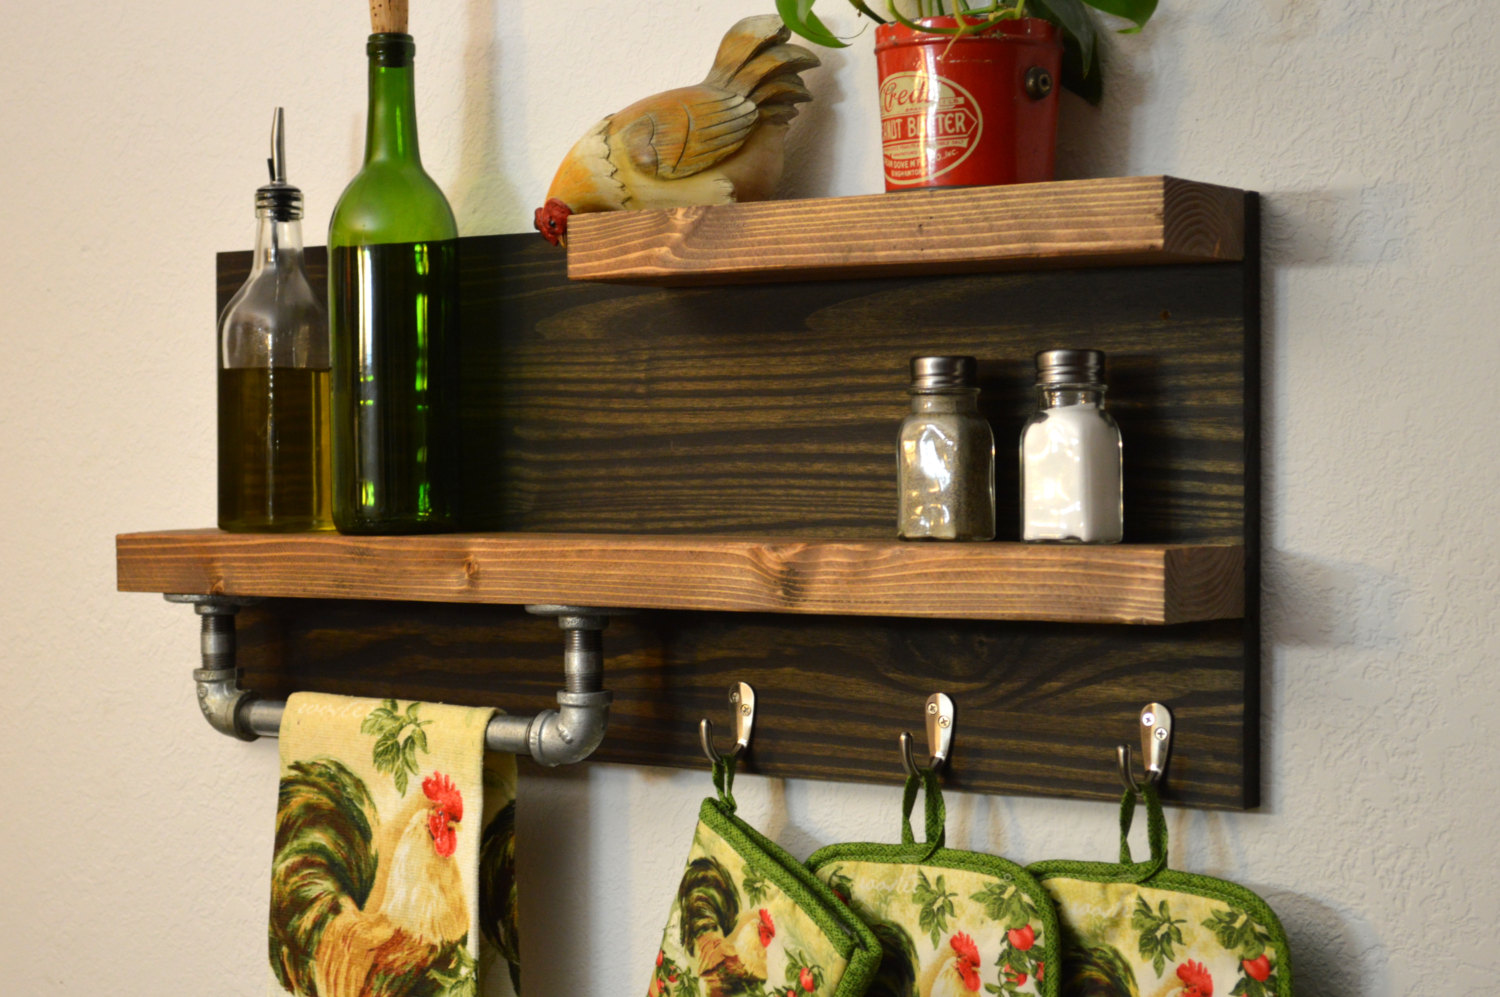 Delicieux Small Wooden Spice Rack To Also Display Decorative Vase And Bottles